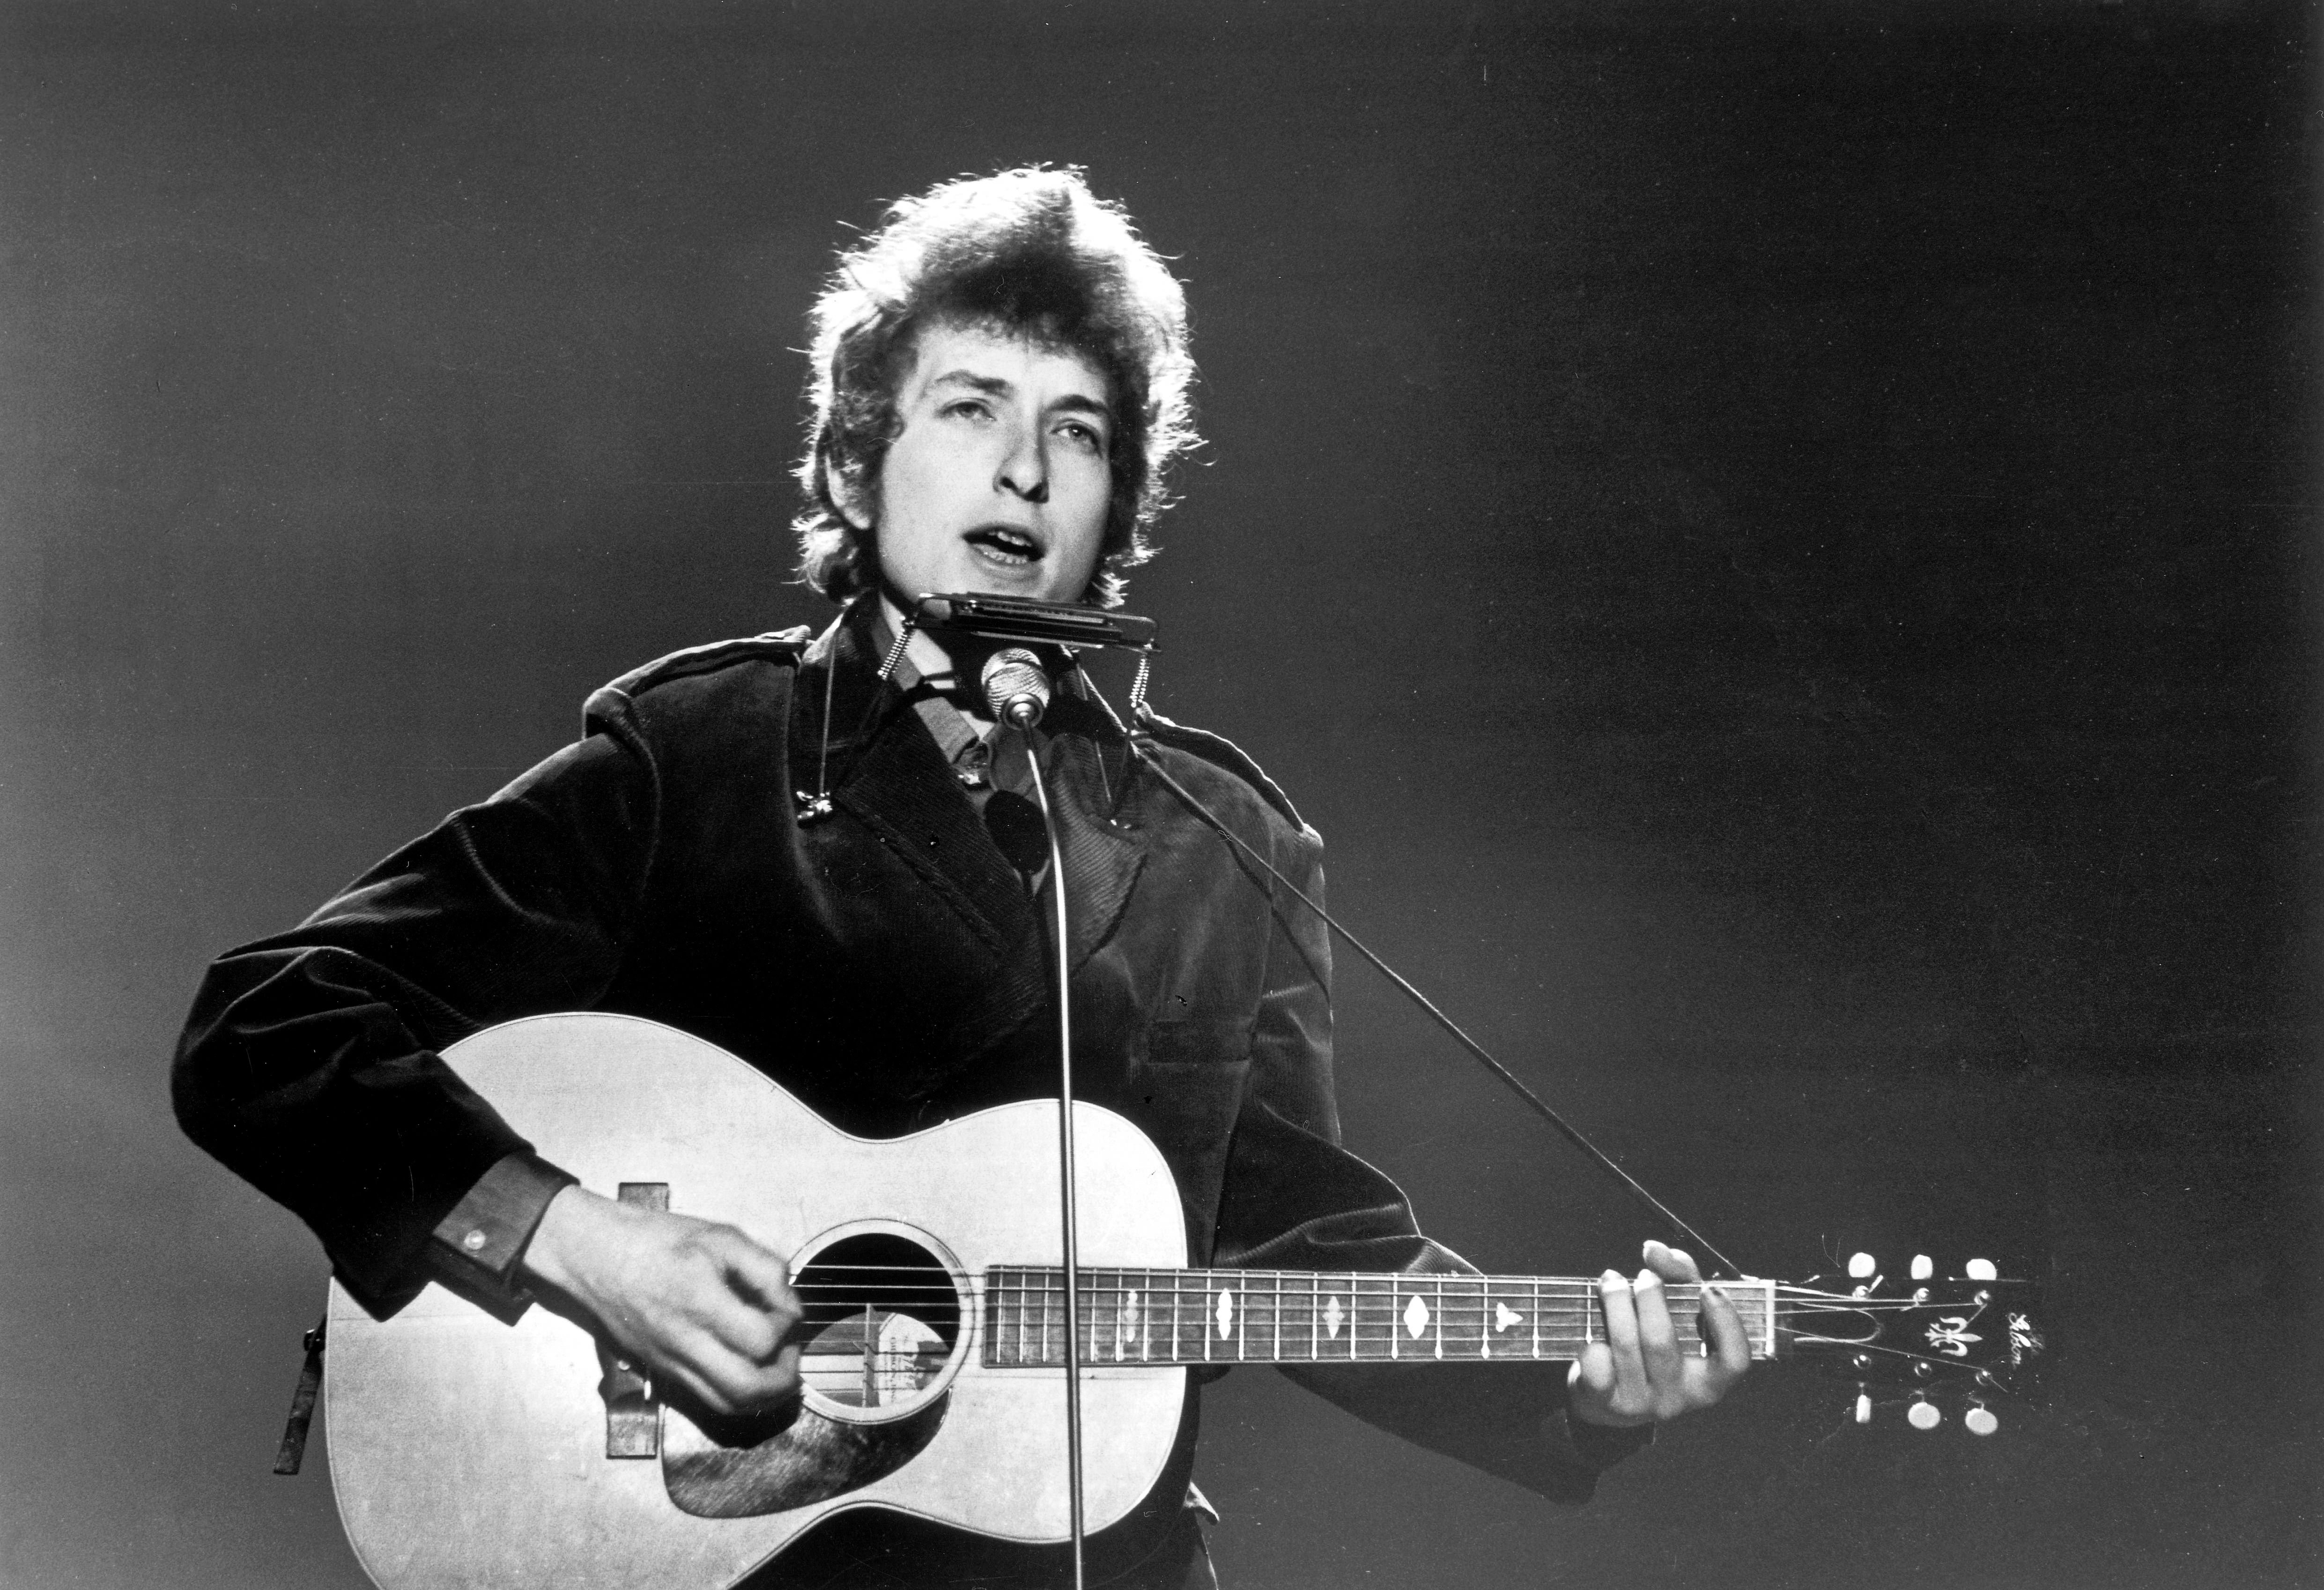 Bob Dylan performing at BBC TV Center, London, 1965 | Photo: Getty Images